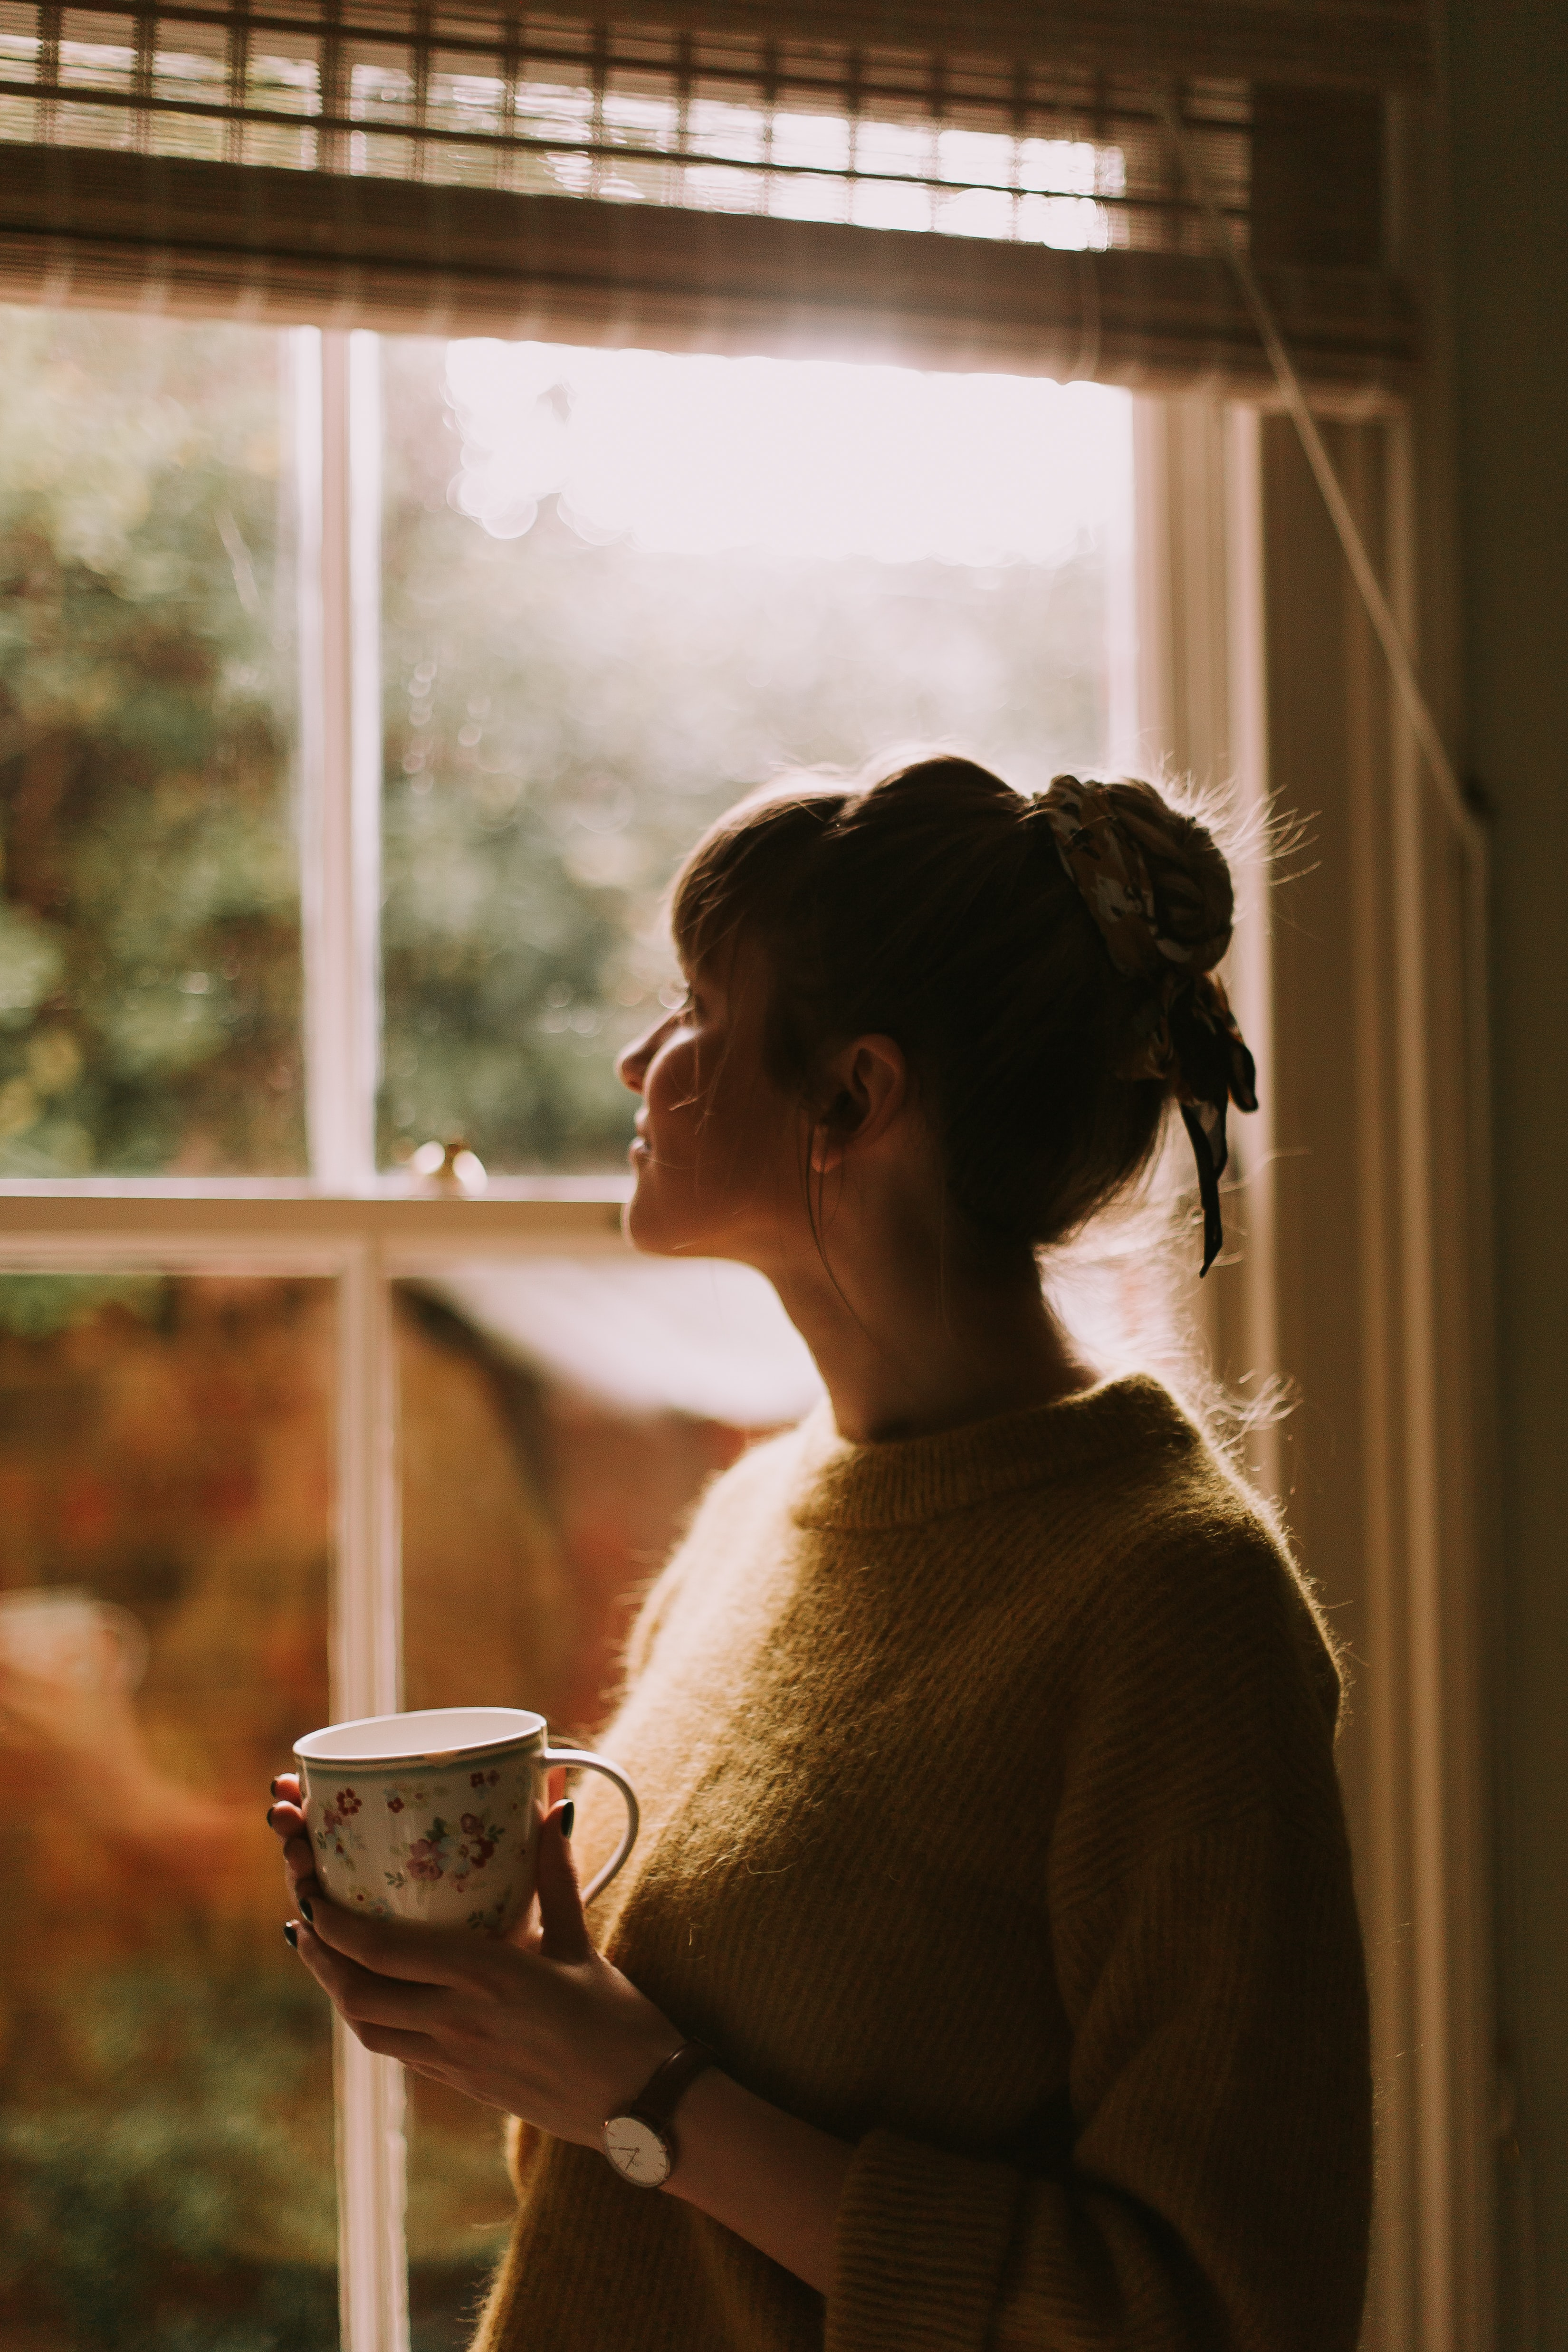 woman holding teacup while standing near window inside room during daytime